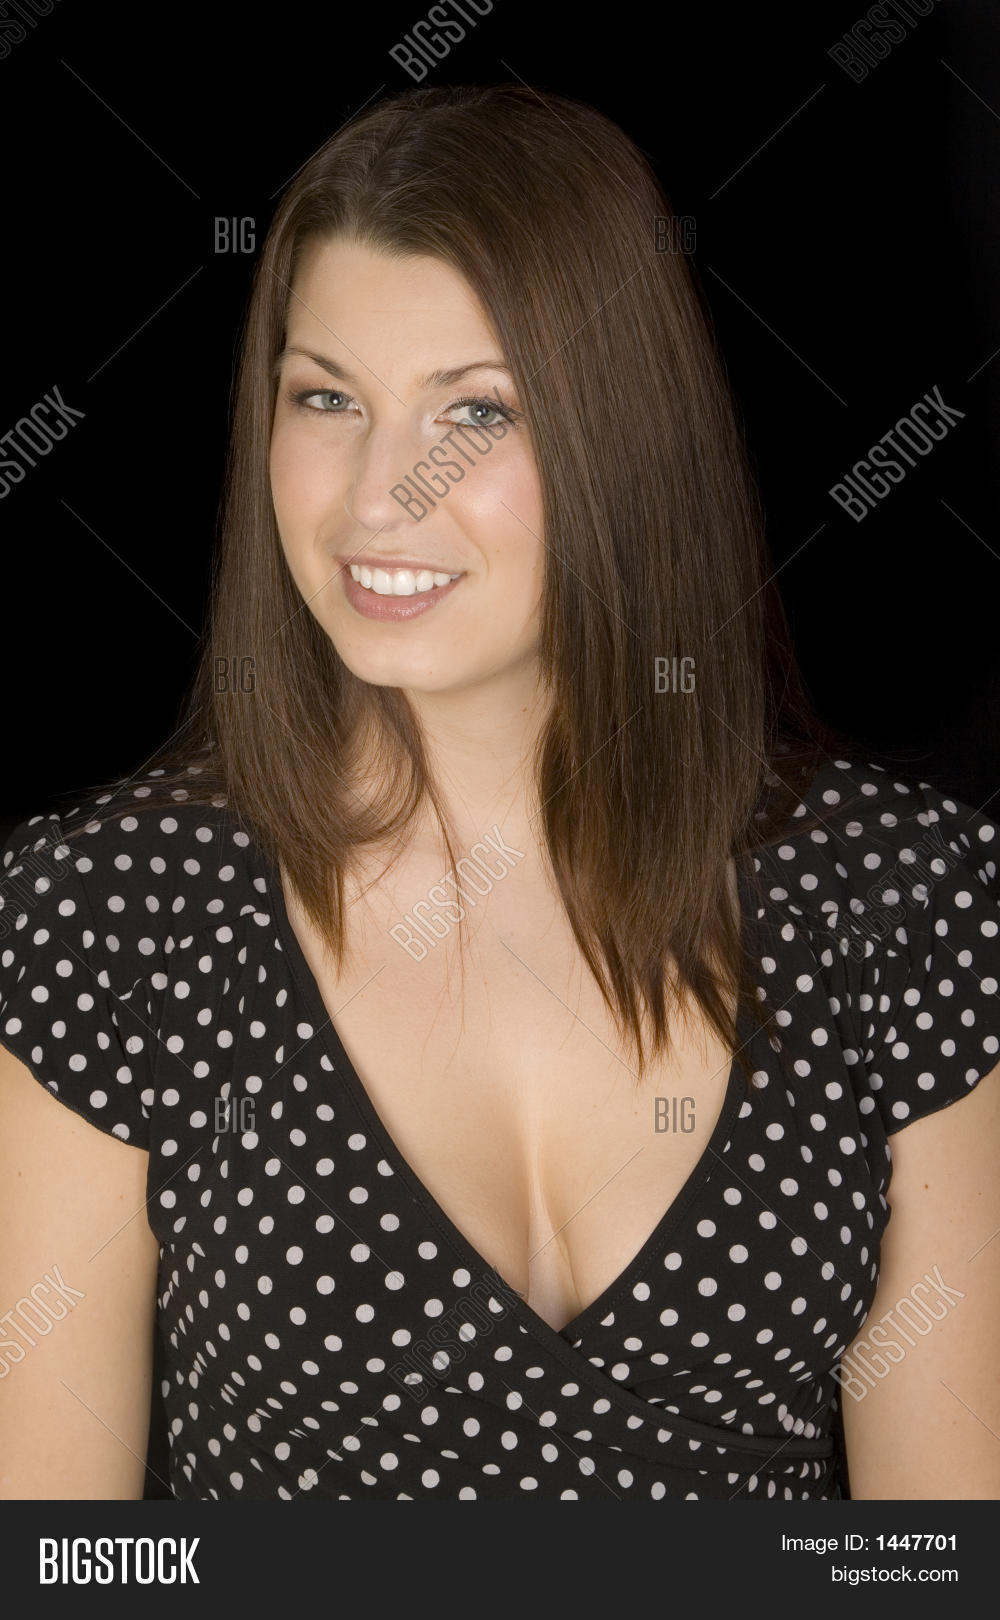 woman in black dress smiling busty with cleavage on black background